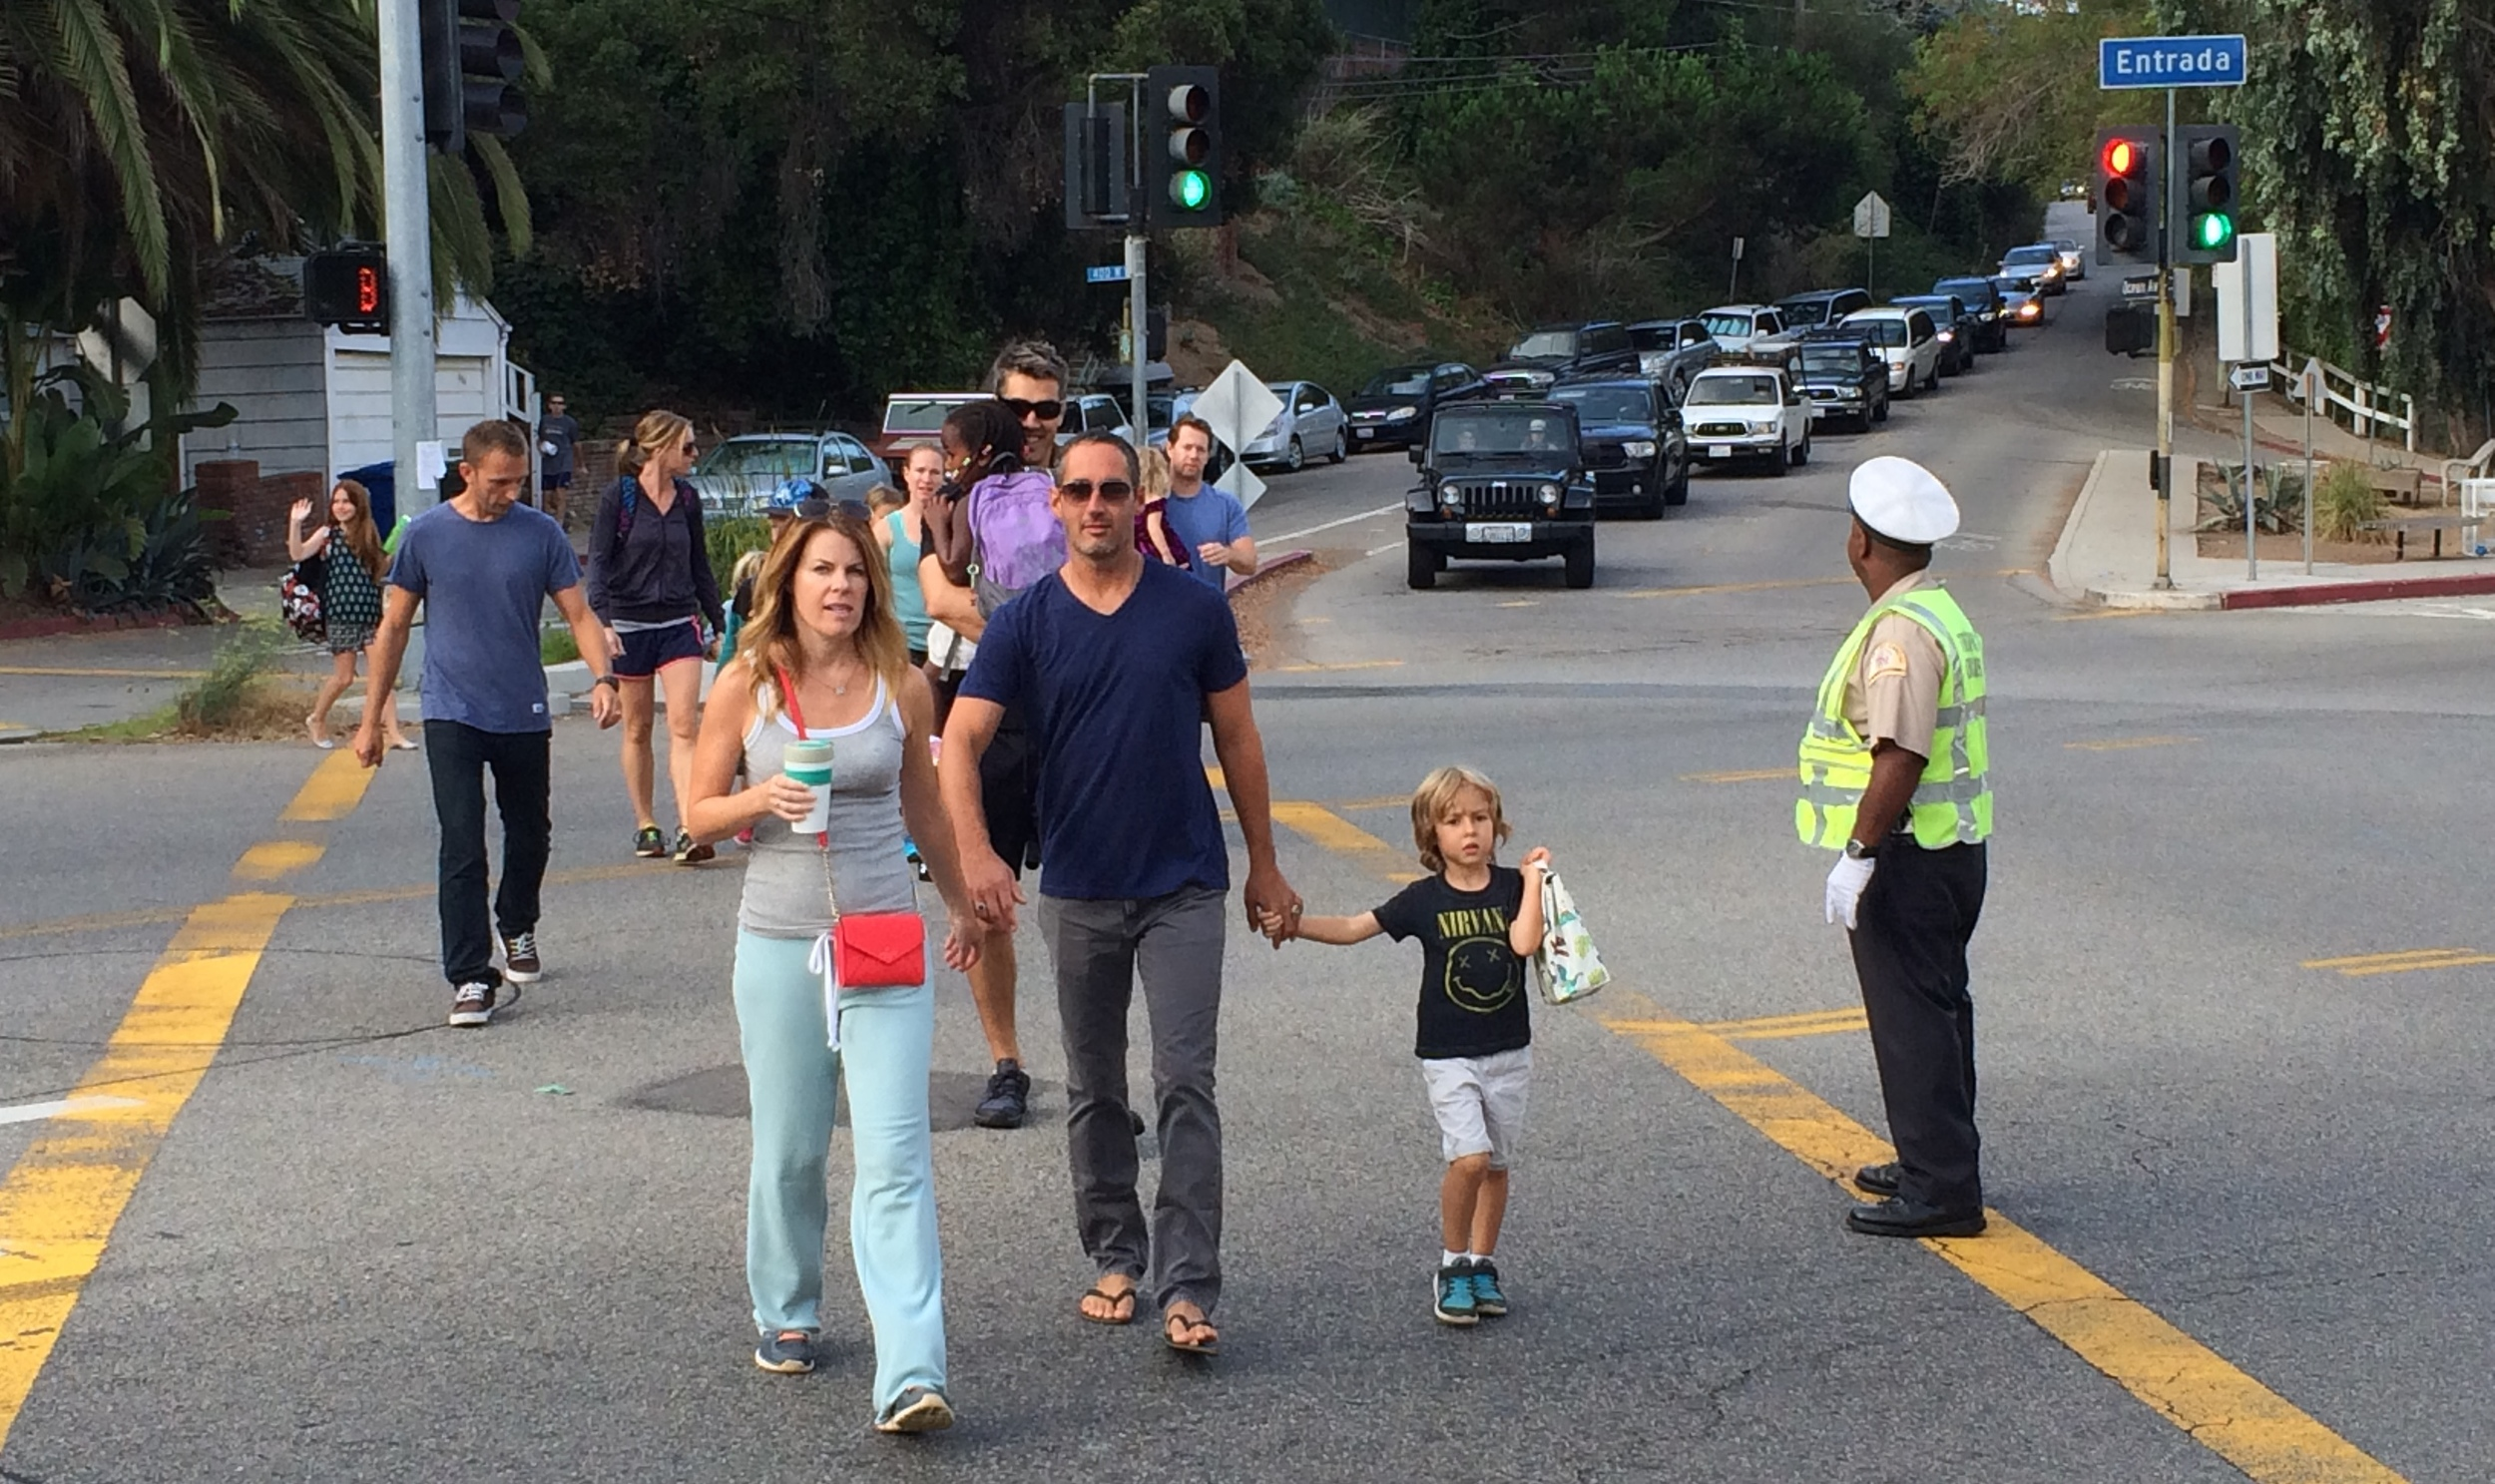 He keeps kids and families safe while keeping traffic moving